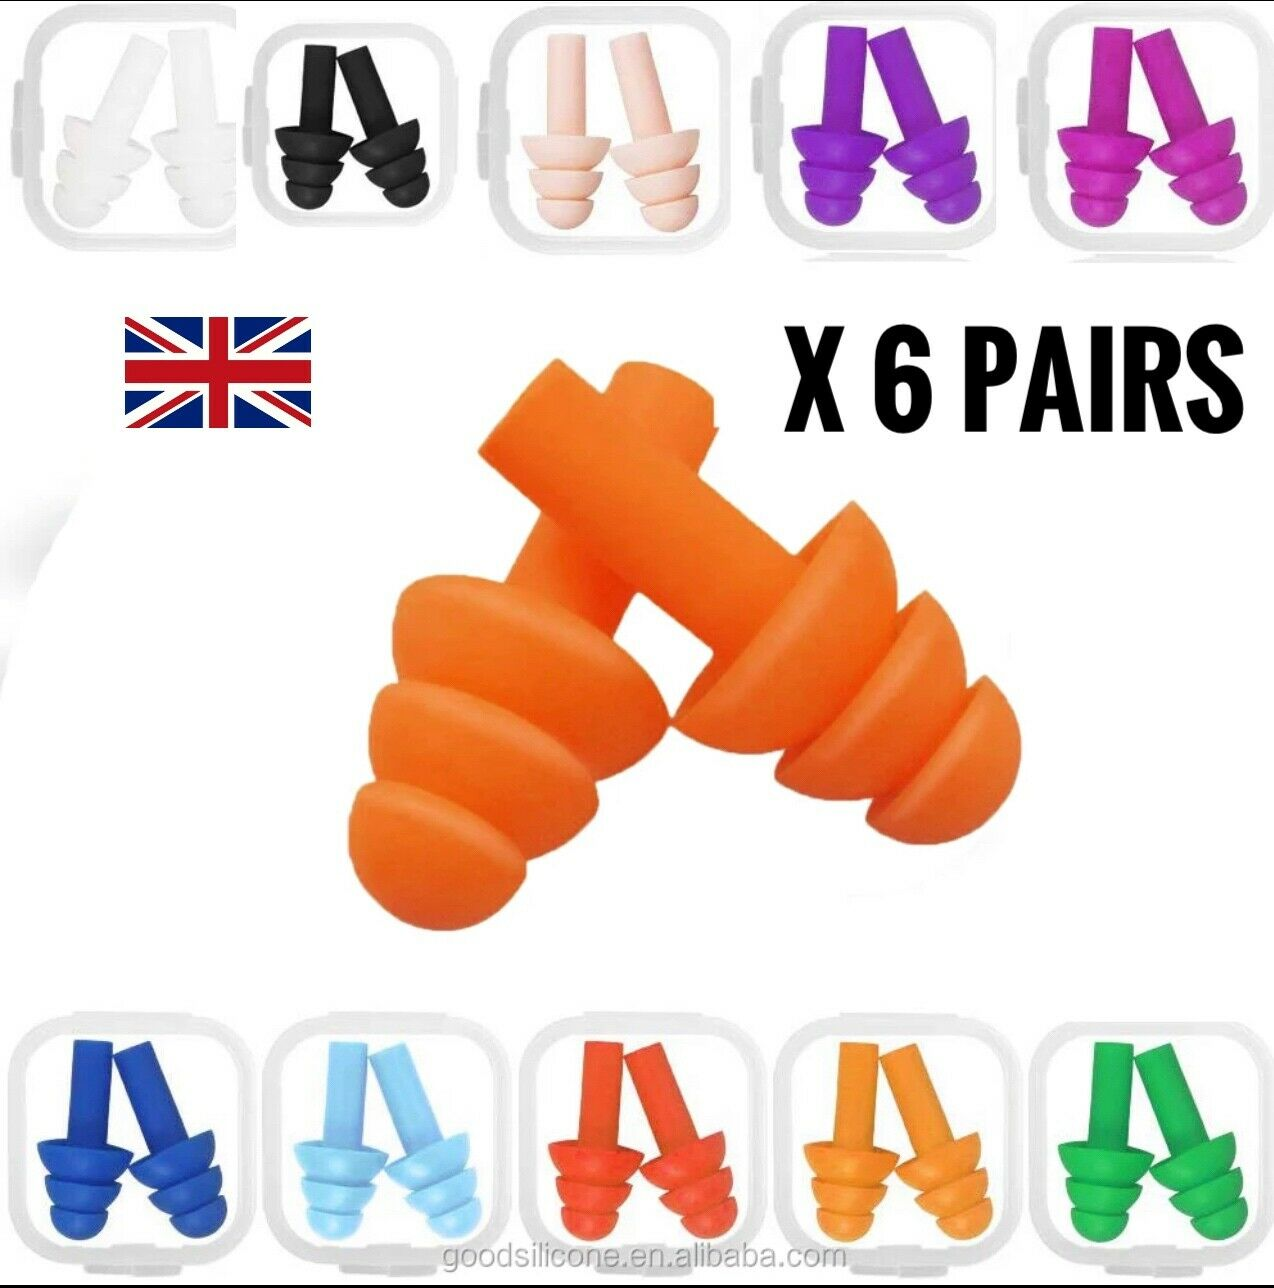 * 6 * Pairs Reusable Soft Silicone Ear Plugs In Cases Sleep Anti Noise Earplugs